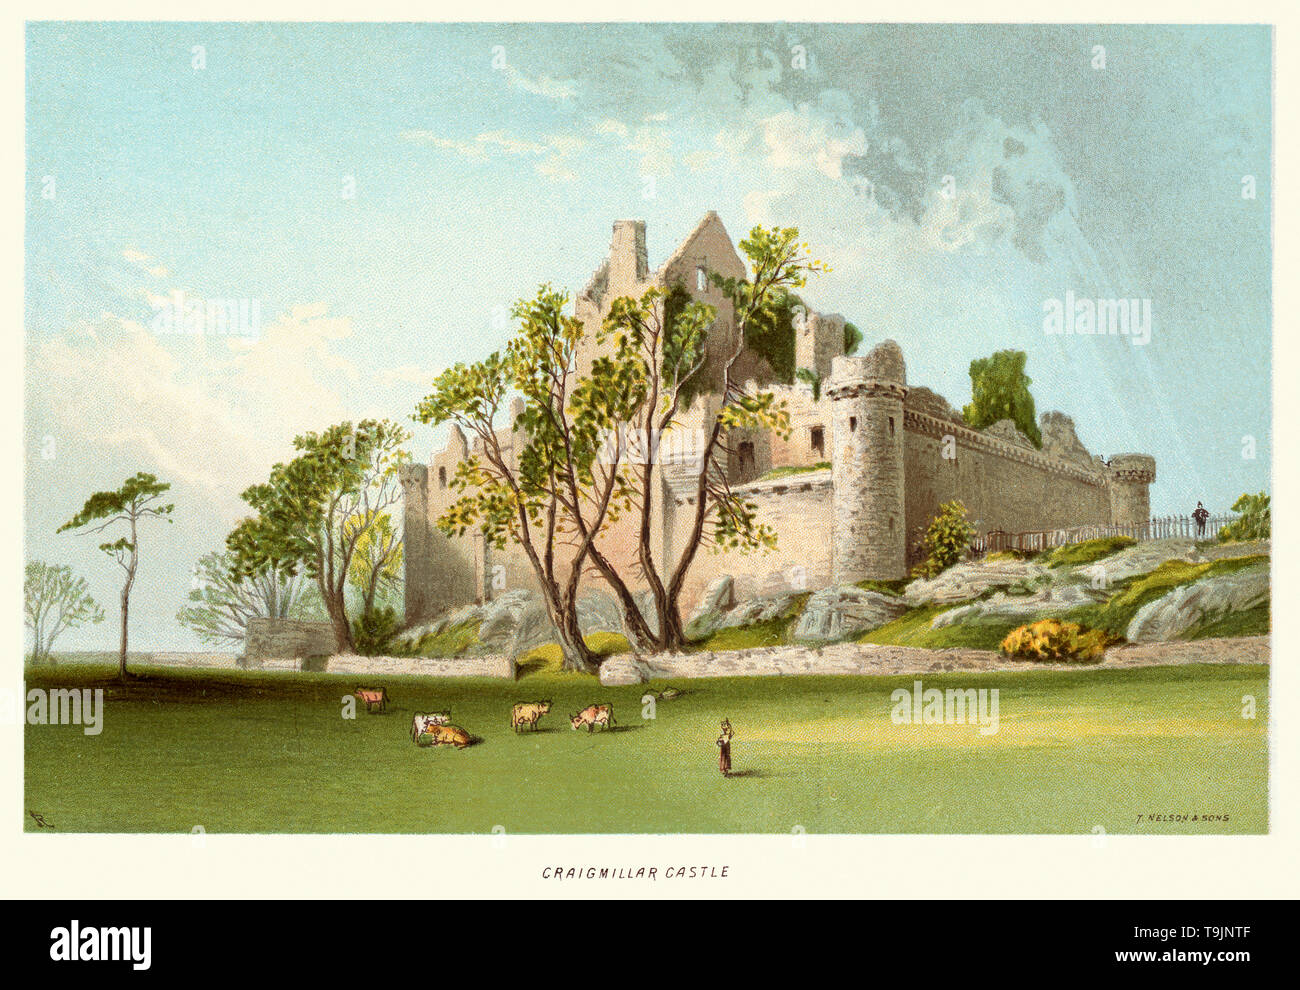 Vintage print of Craigmillar Castle circa 1880. Craigmillar Castle is a ruined medieval castle in Edinburgh, Scotland. It was begun in the late 14th century by the Preston family, feudal barons of Craigmillar, and extended through the 15th and 16th centuries. Stock Photo